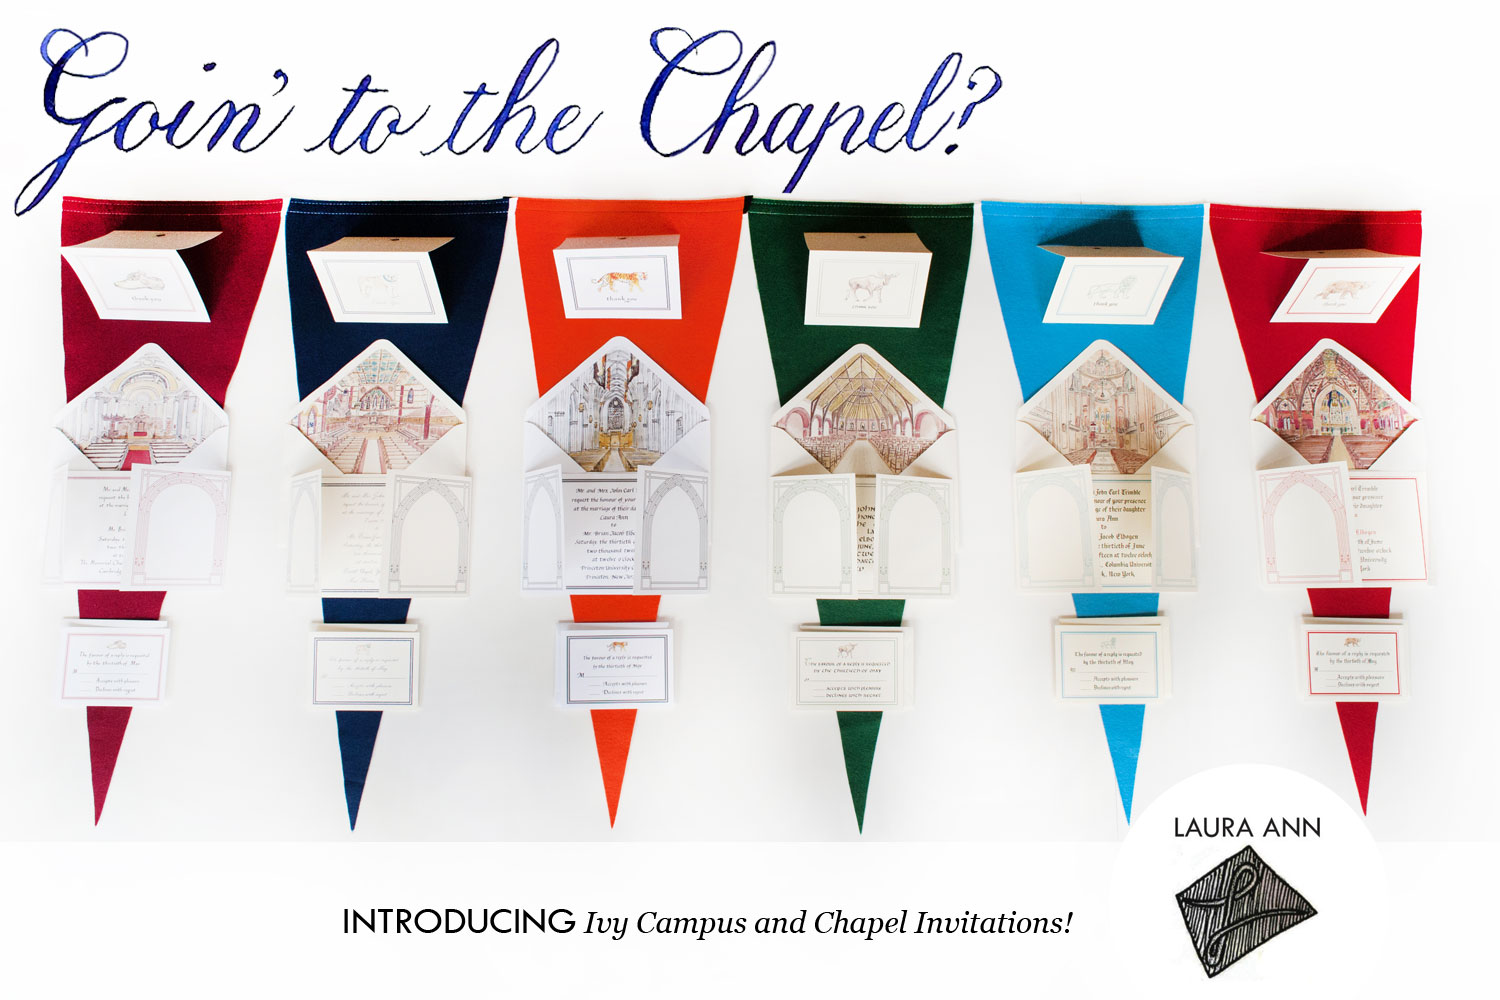 LAURA-ANN_Ivy-Campus-and-Chapel-Invitations.jpg